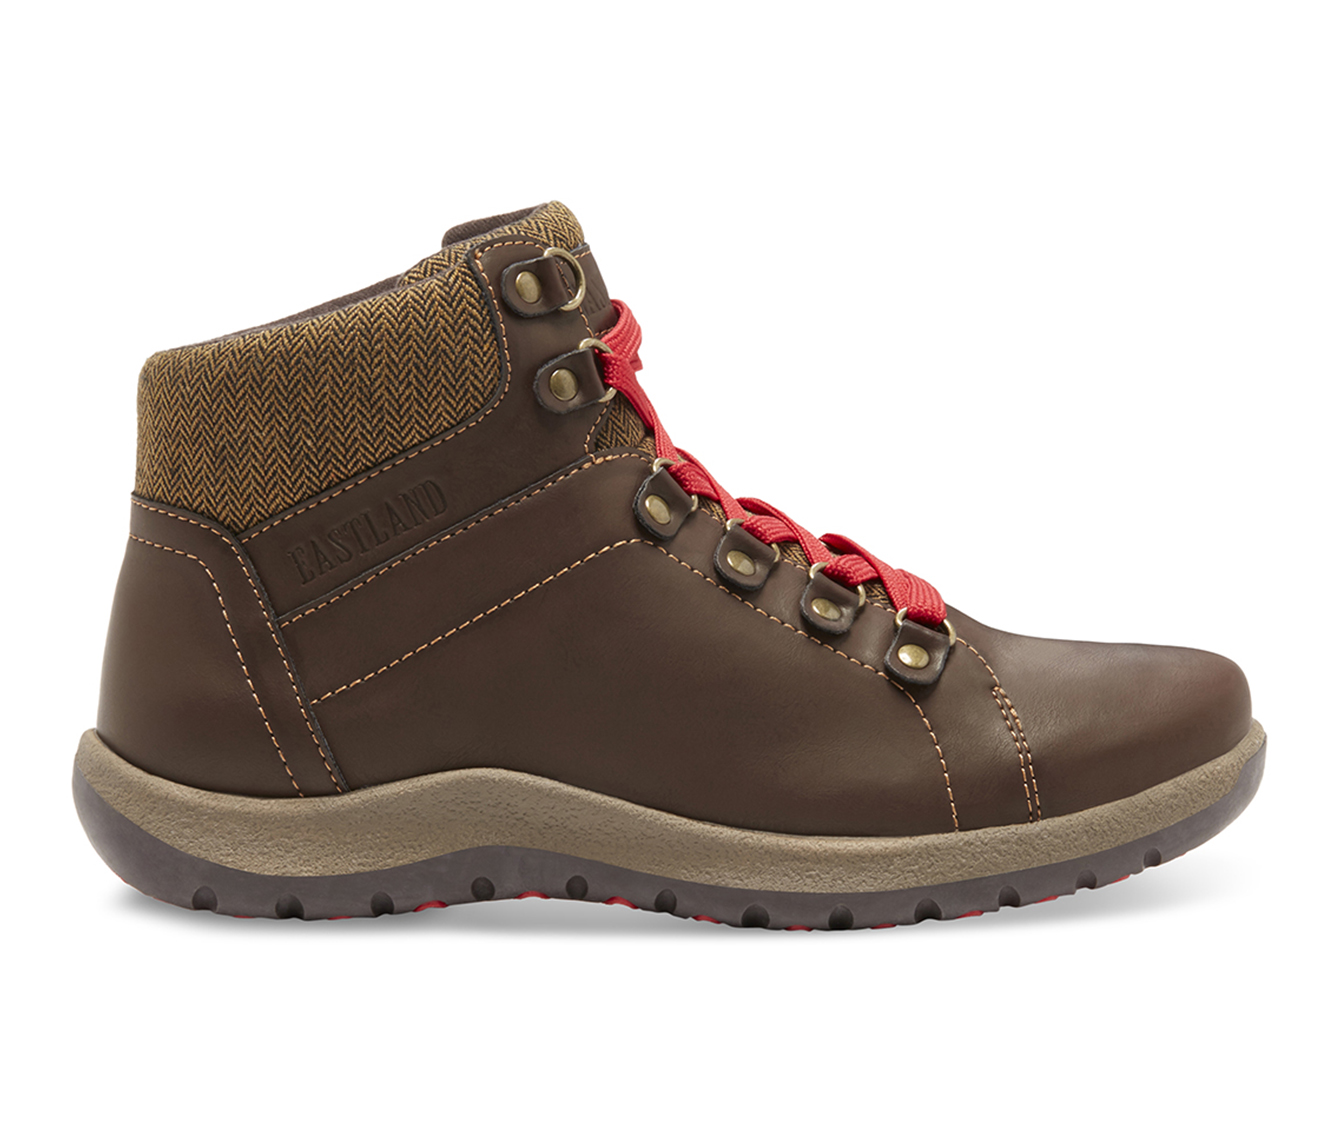 Eastland Bethanie Women's Boots (Brown - Faux Leather)